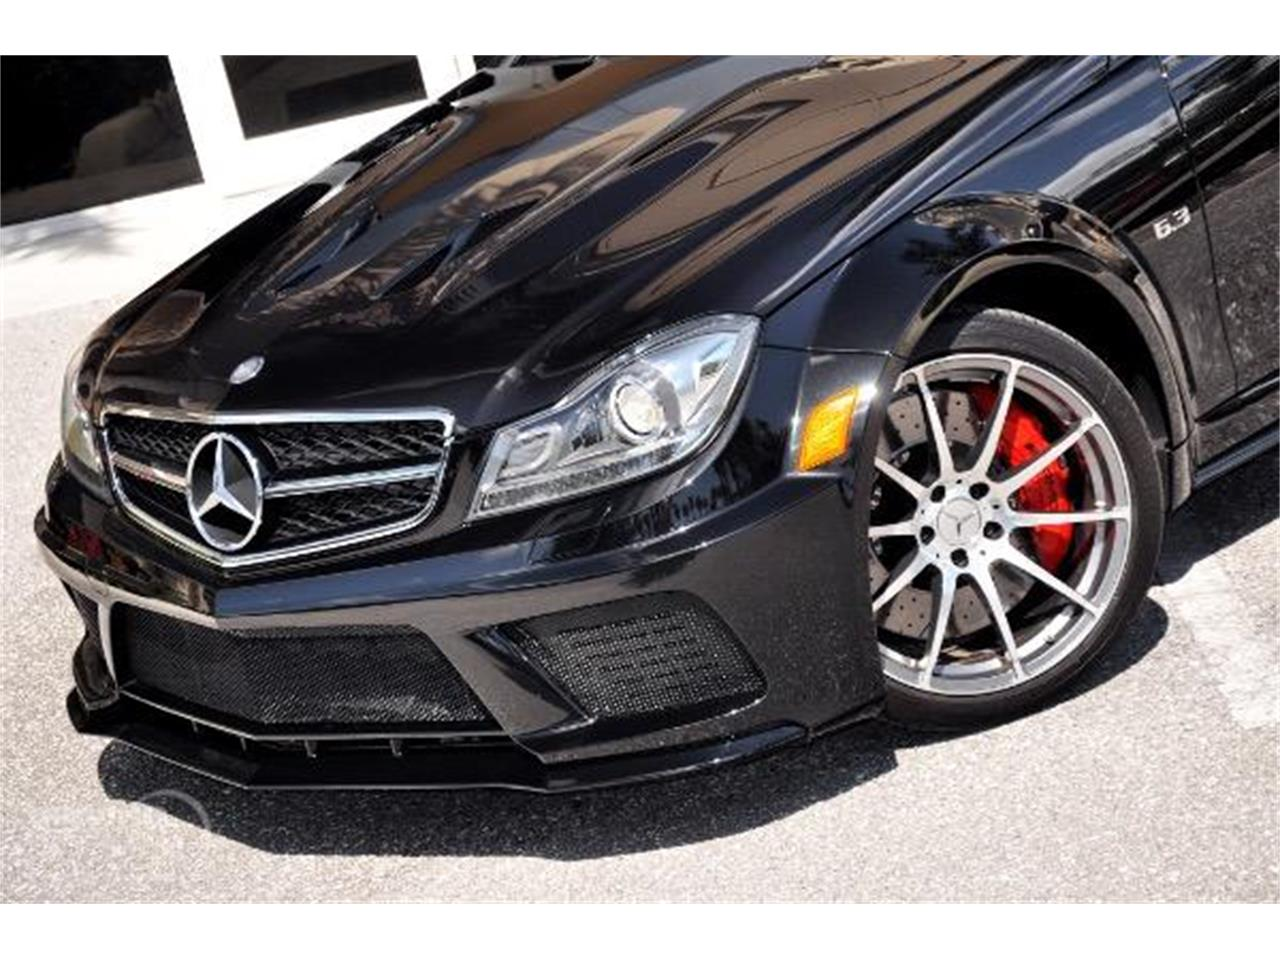 2013 Mercedes-Benz C63 AMG for sale in West Palm Beach, FL – photo 37